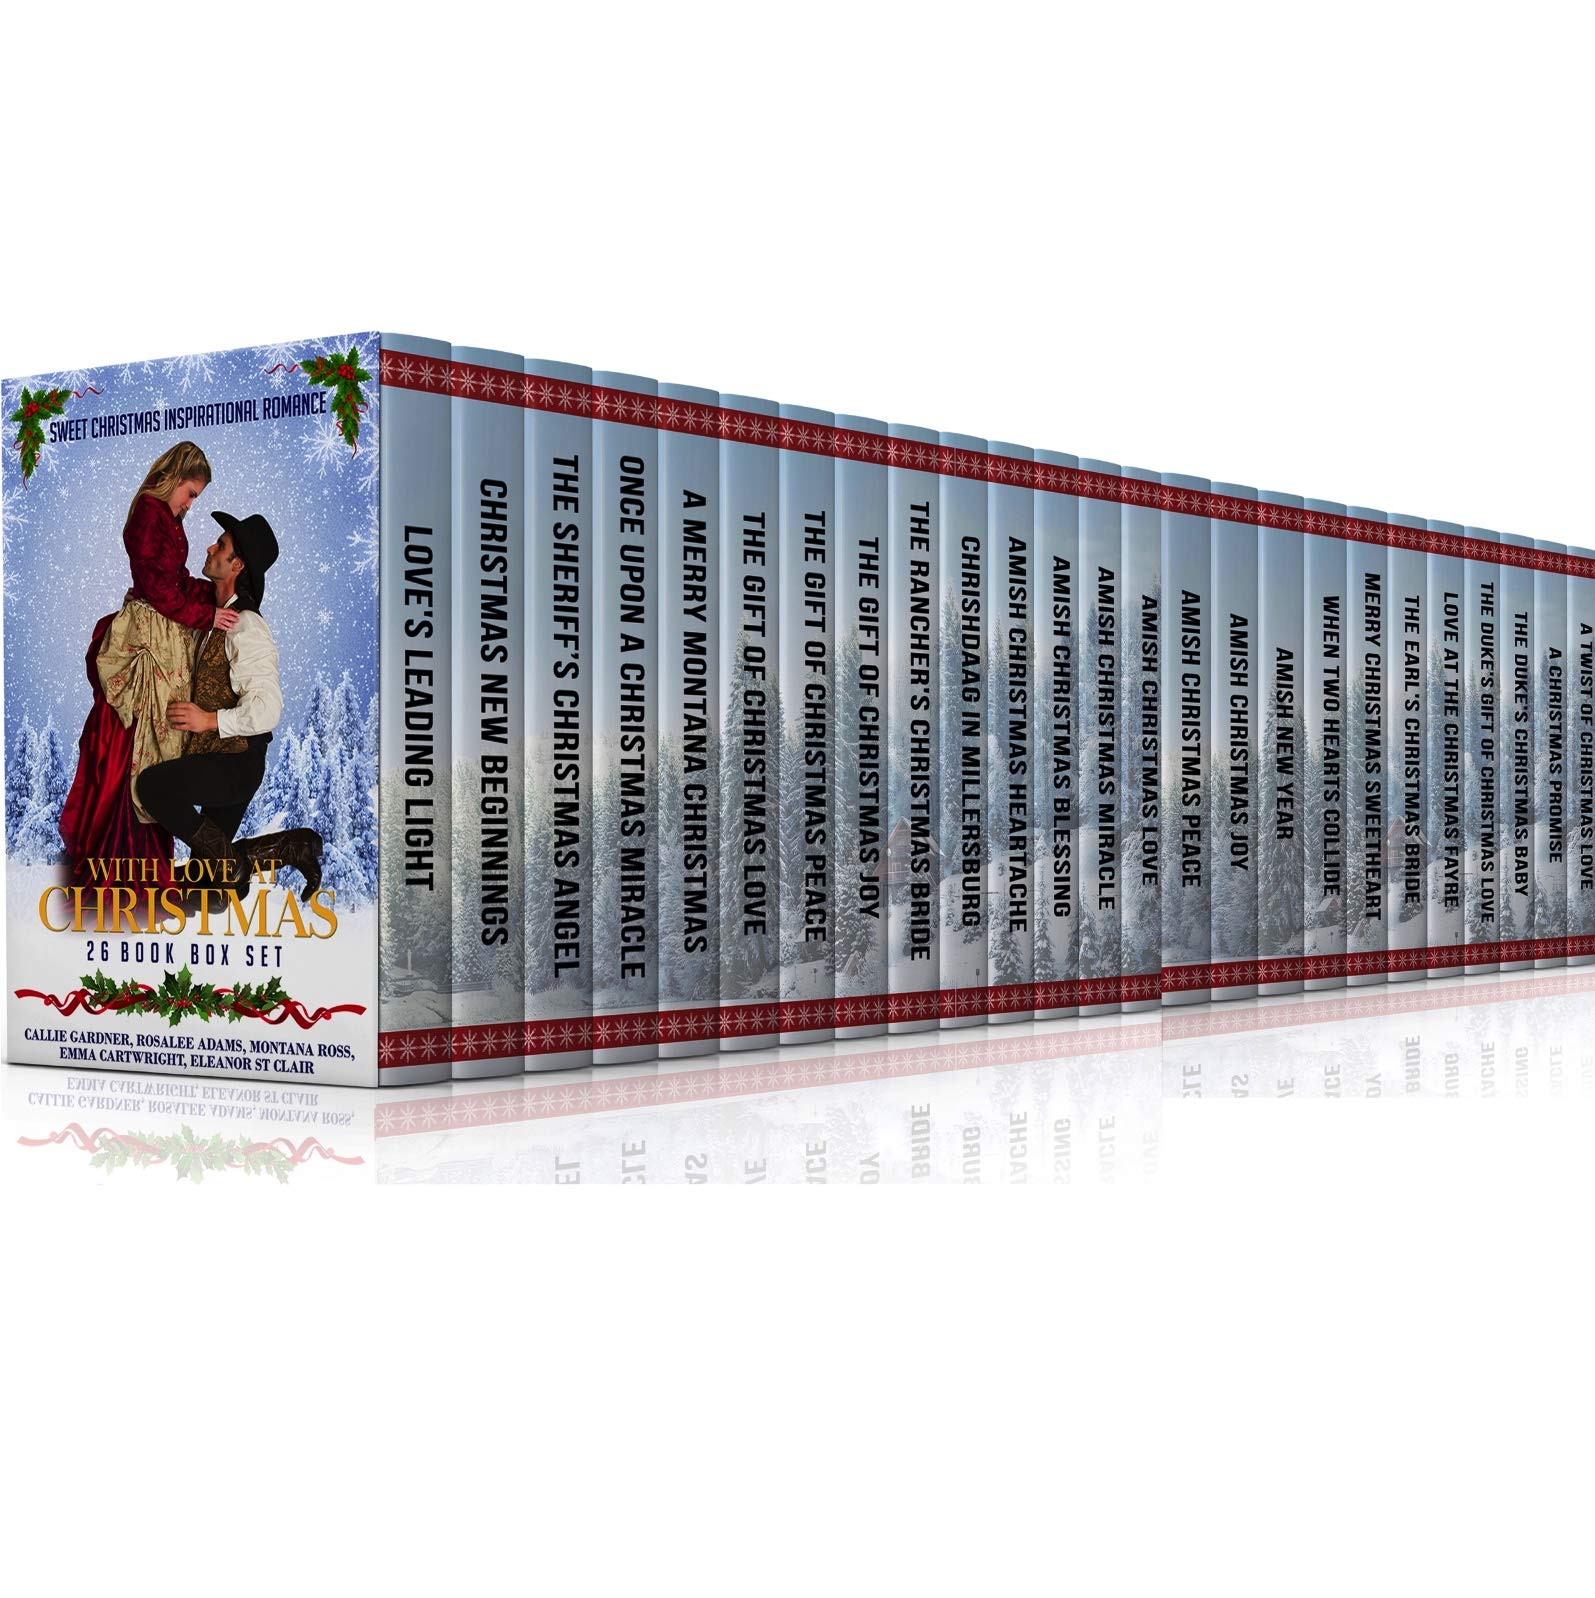 With Love At Christmas  26 Book Bumper Box Set Of Sweet Clean Christmas Romance Stories  Mail Order Bride Historical Romance Western Romance Regency ... Inspirational Romance  English Edition